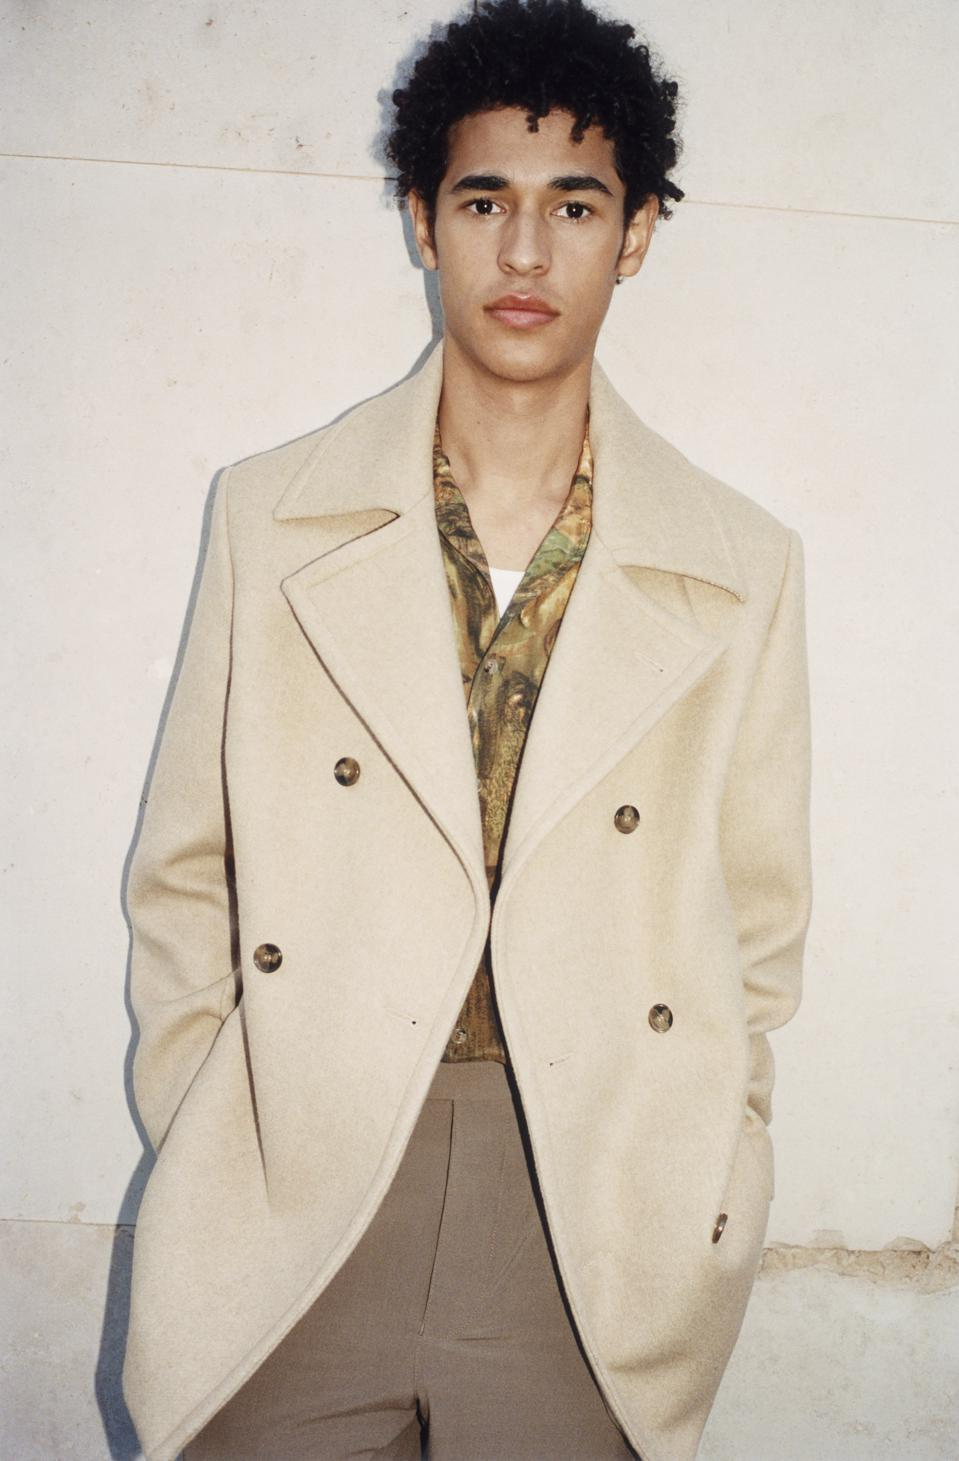 A mixed-race male model in his 20w models a tan overcoat, printed shirt and light brown pants from a sustainable brand